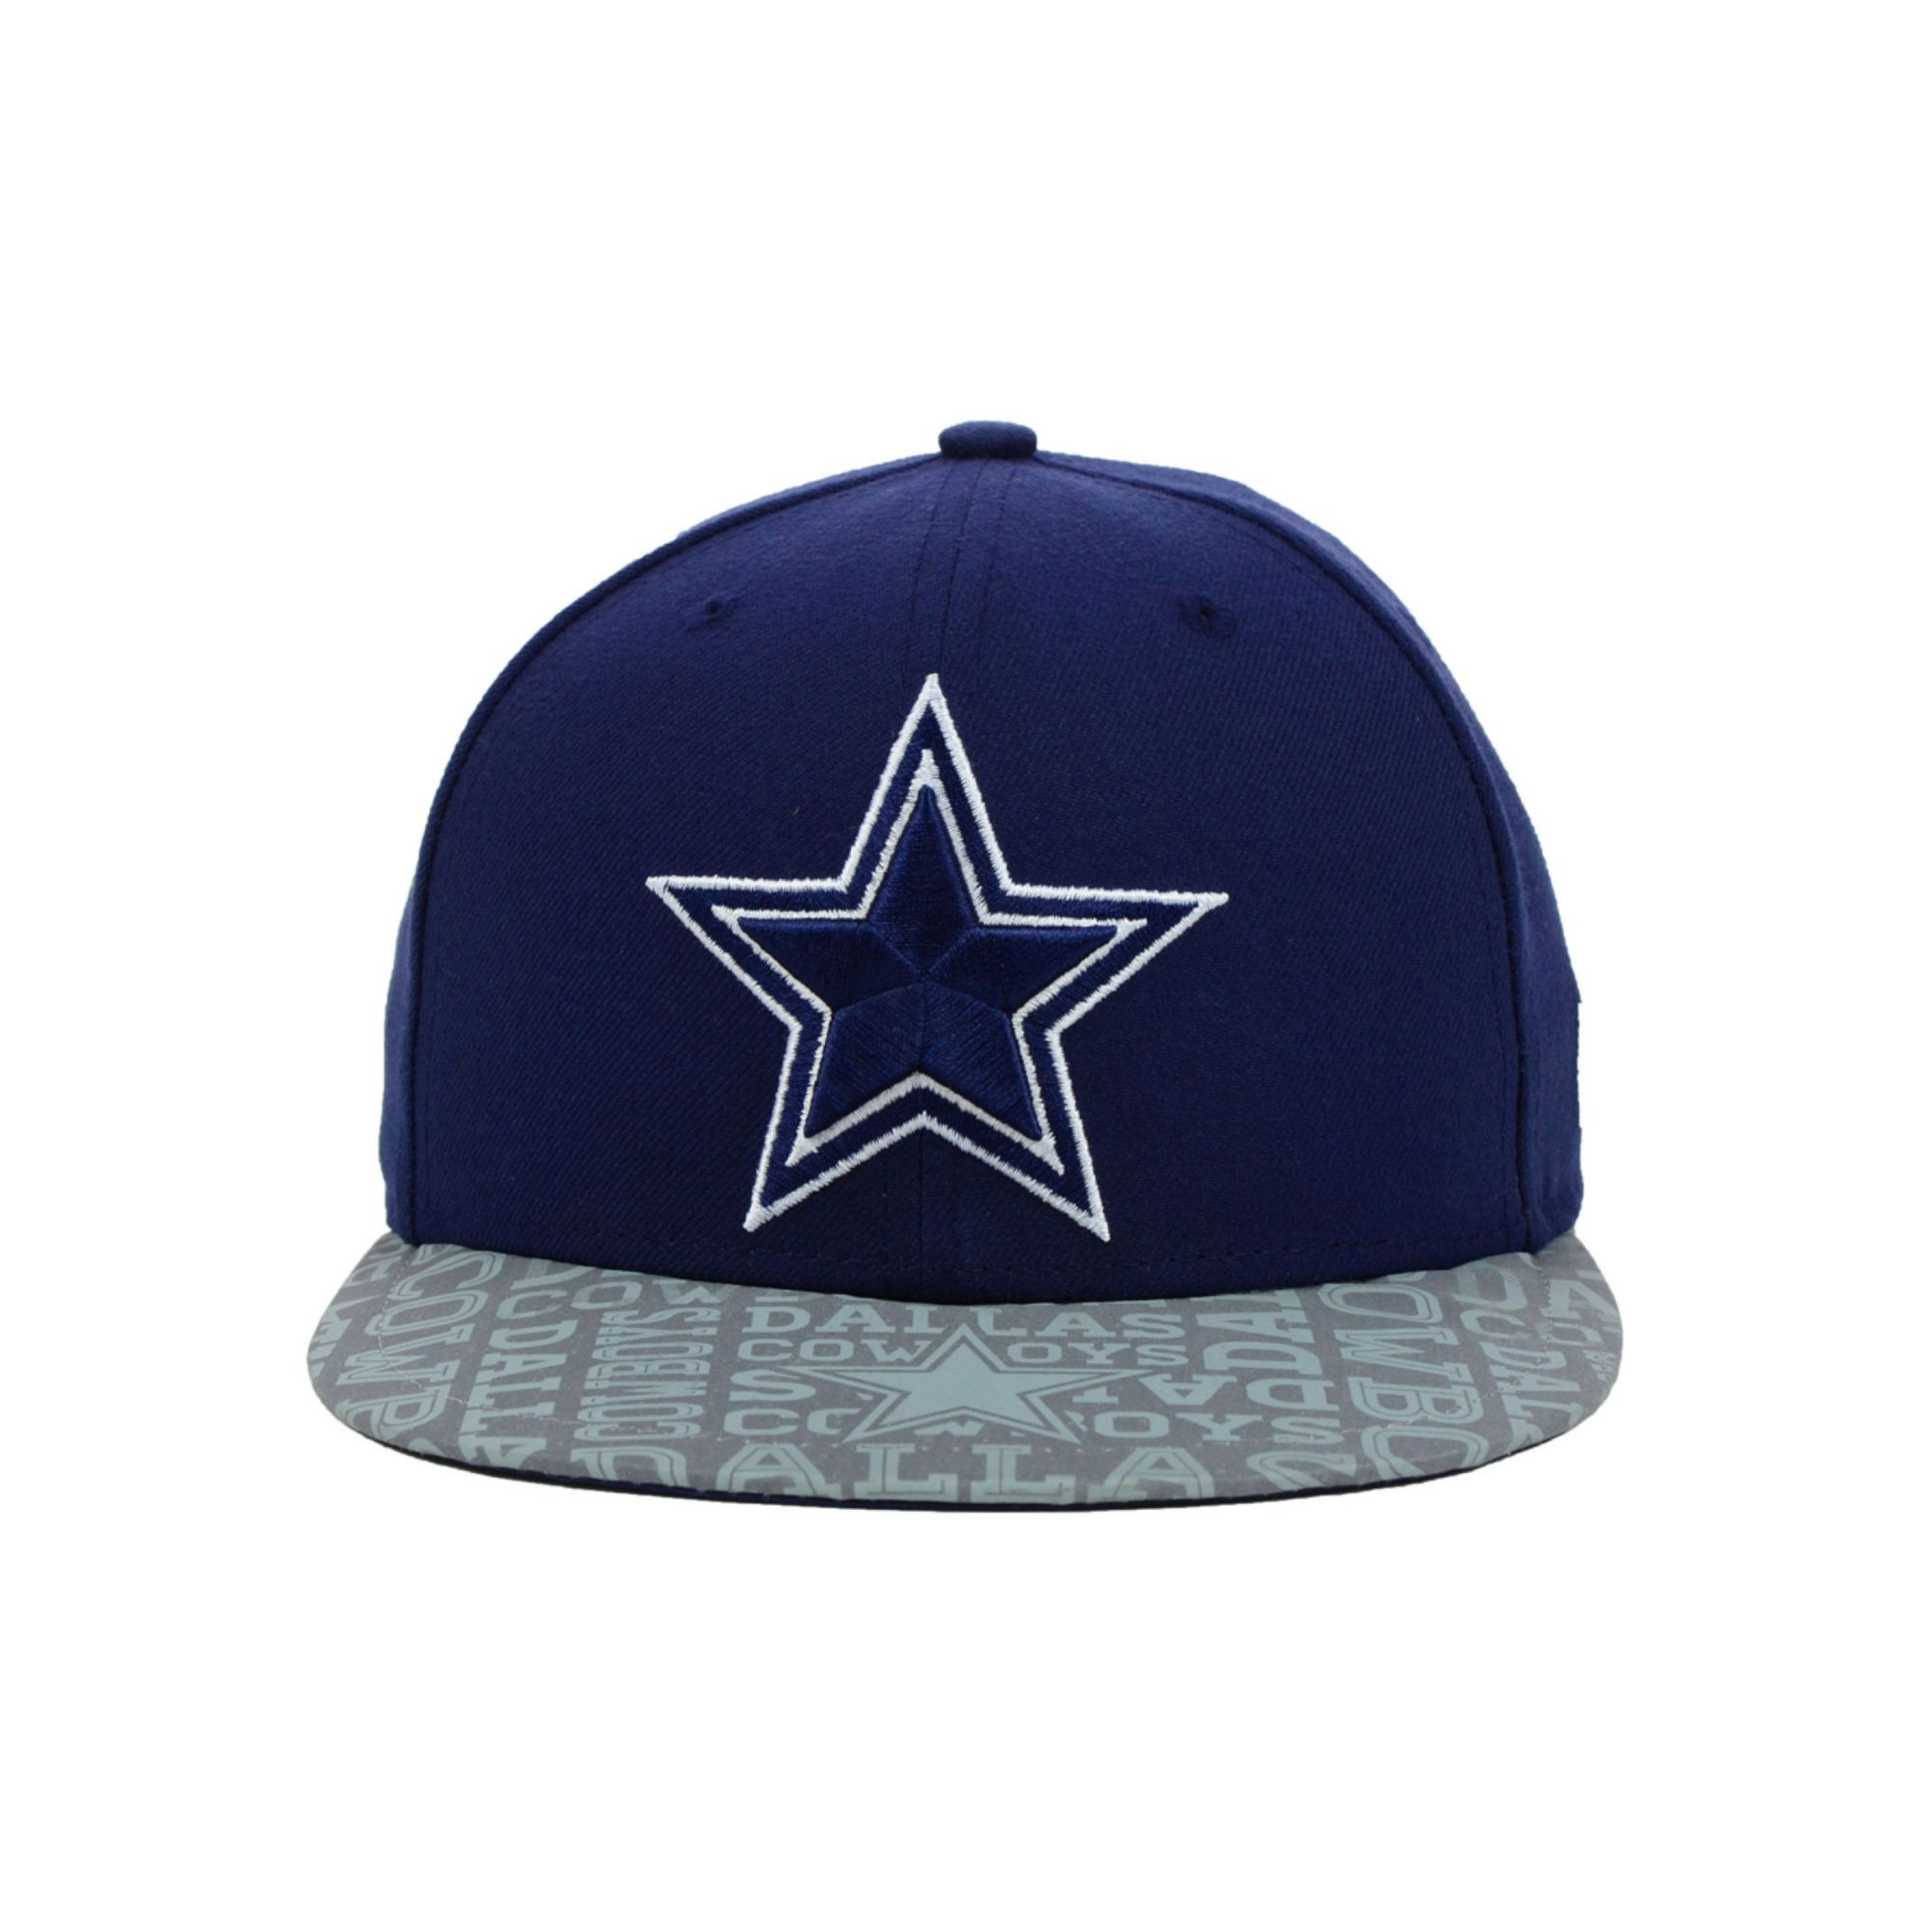 eadd7766d1d0b8 ... authentic lyst ktz kids dallas cowboys nfl draft 59fifty cap in gray  for men 56576 54391